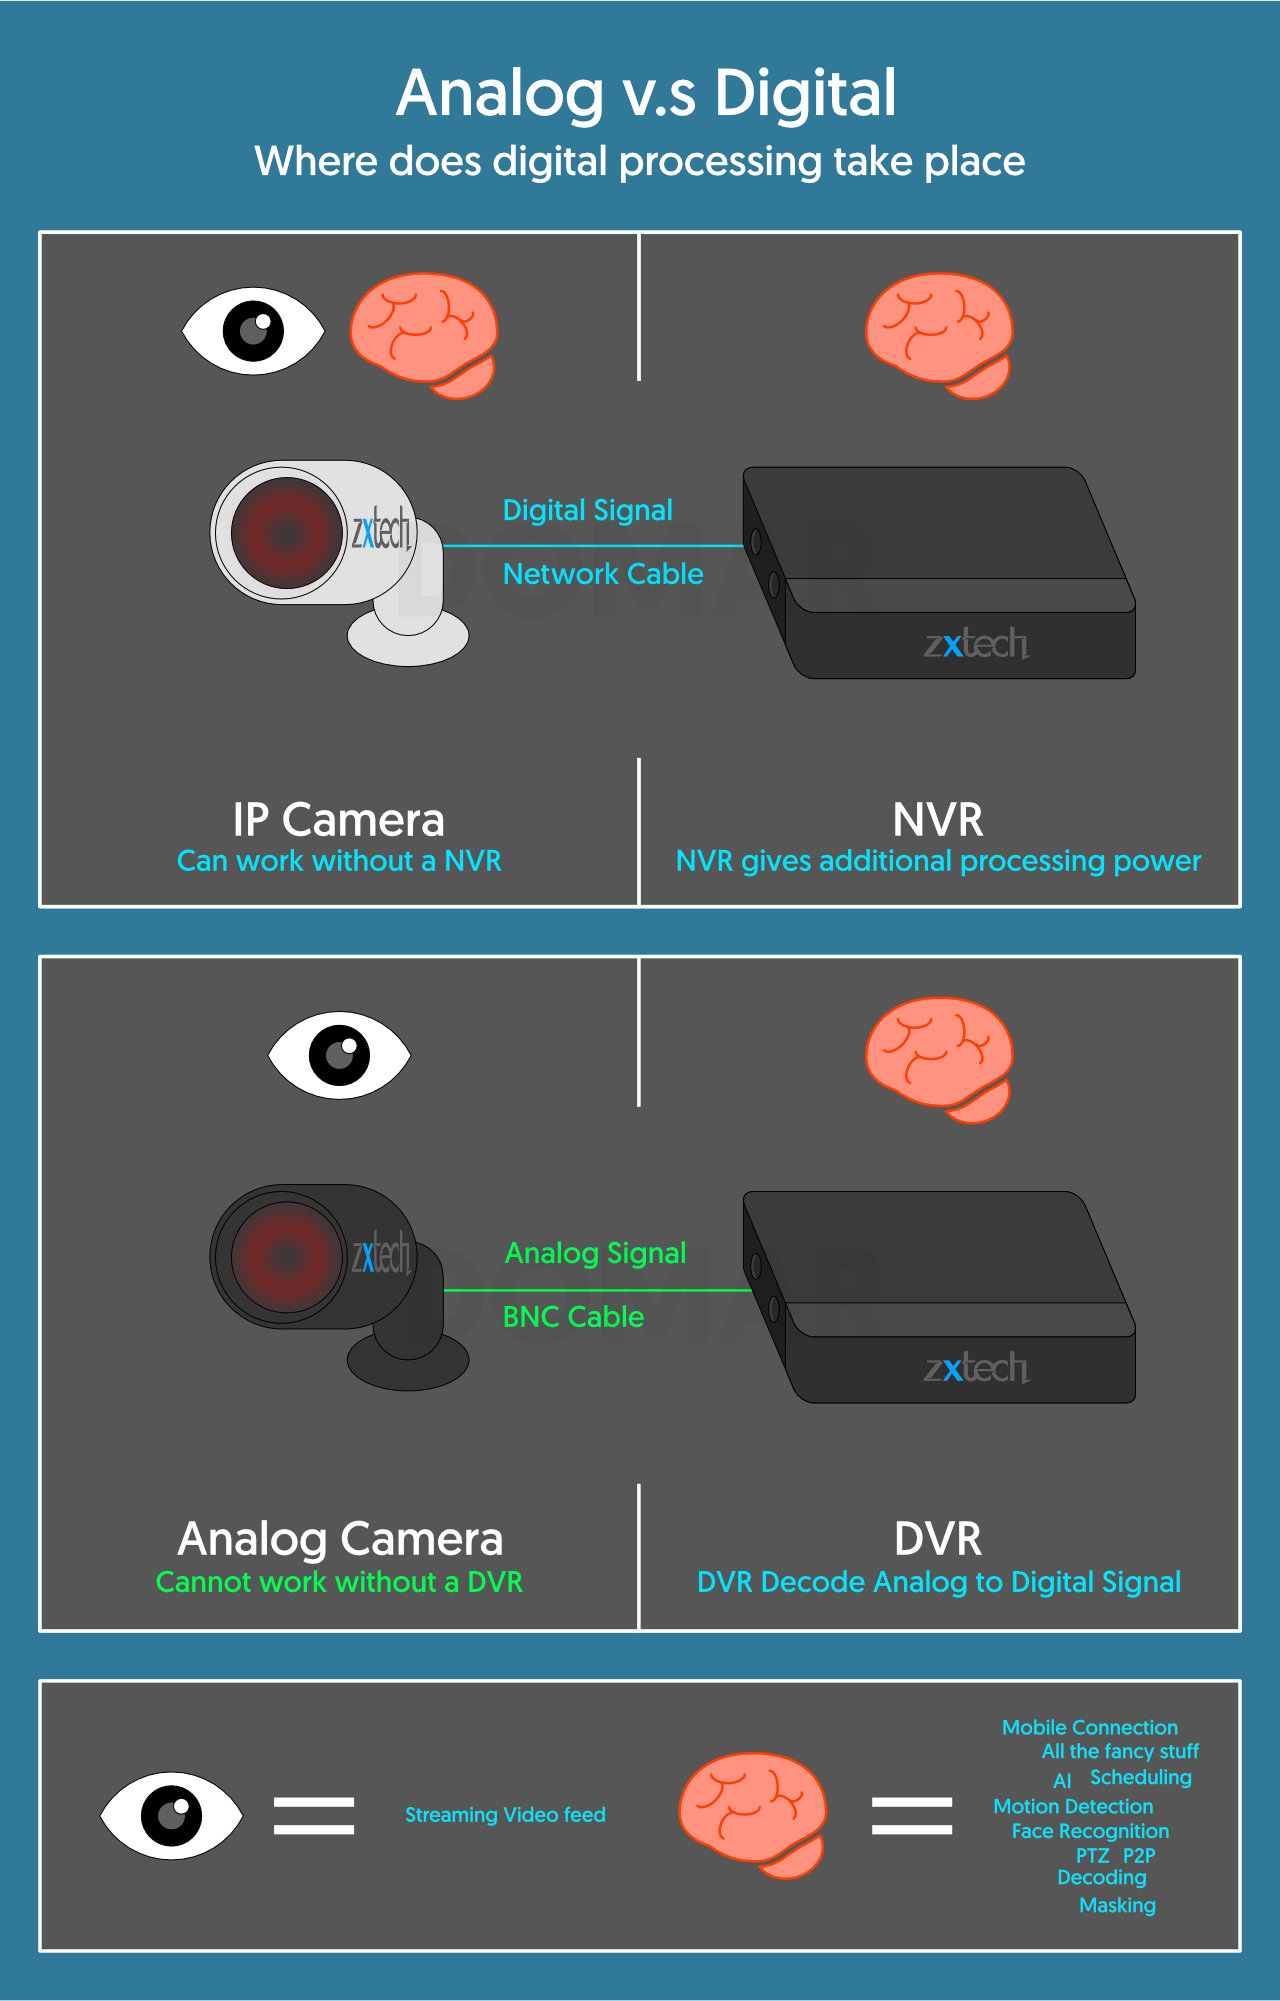 Where does Digital Processing Take Place in CCTV System - Zxtech Guide